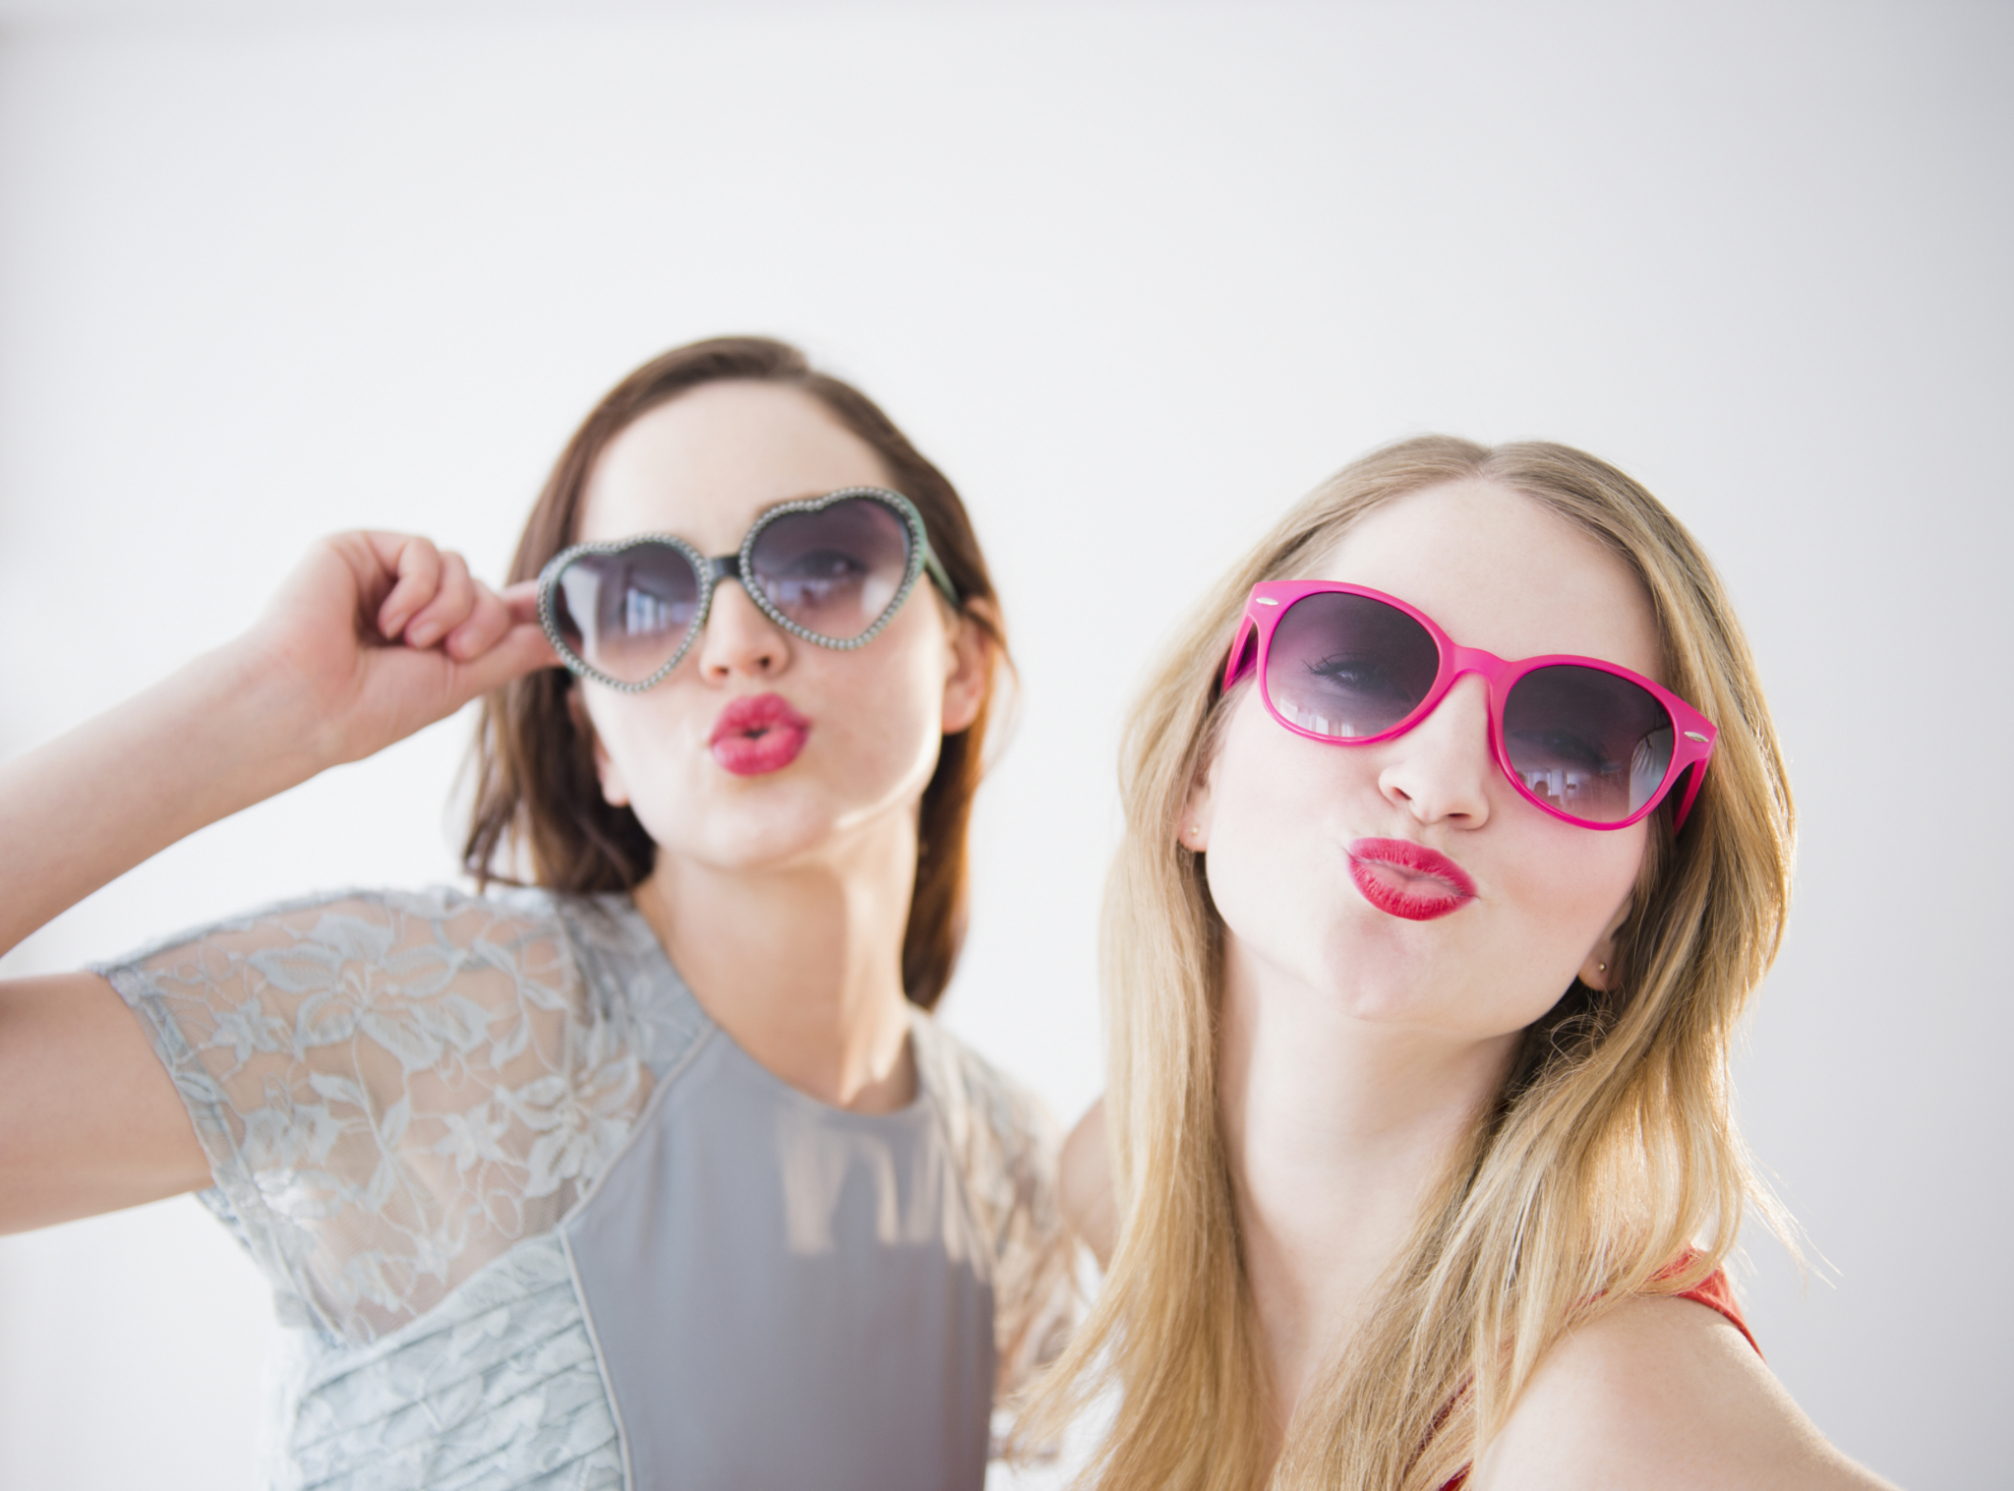 The expression displayed by the women in this stock photo is sometimes described as a duck face.